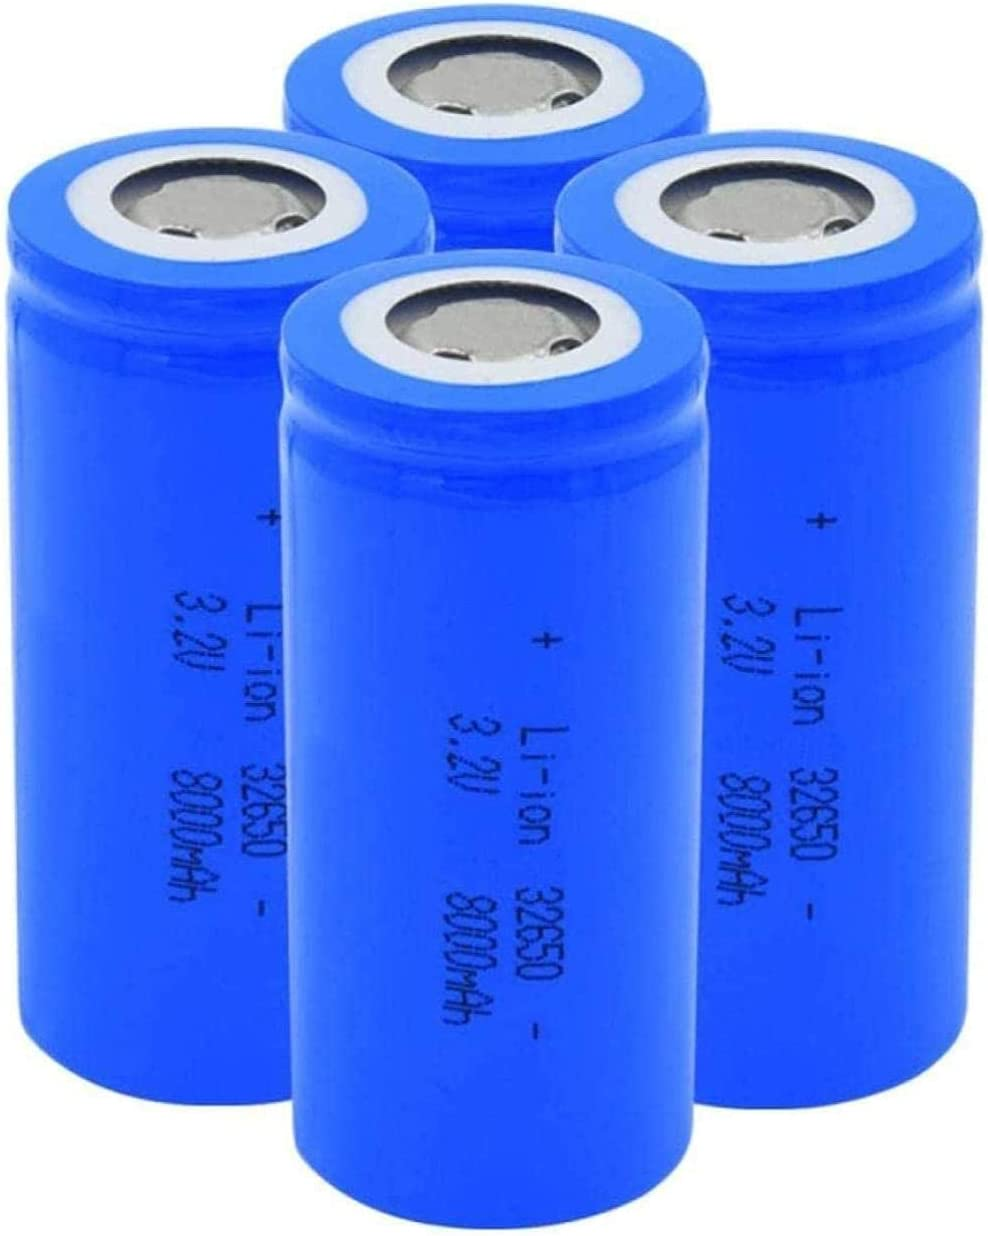 Rechargeable Battery El Paso Mall 3.2V Ranking TOP17 32650 Rechargeab Li-Ion 8000Mah